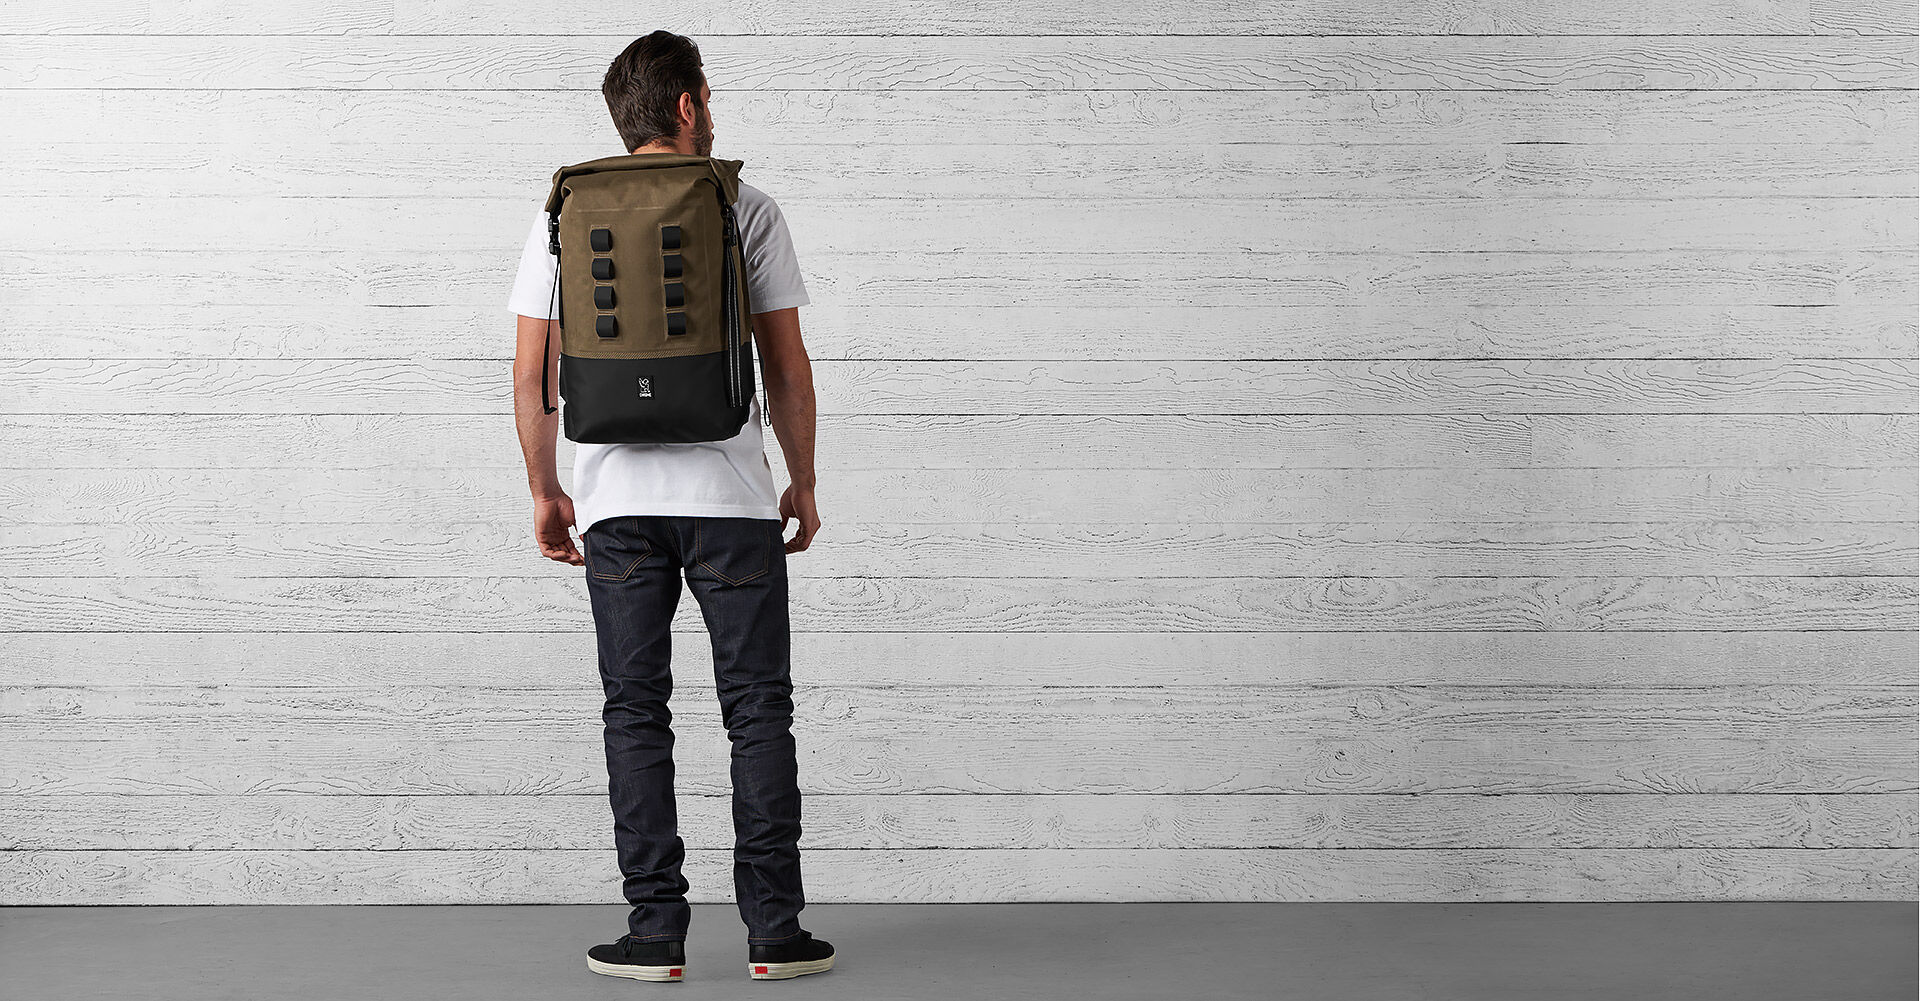 Urban Ex Rolltop 28L Backpack in Ranger / Black - wide view.